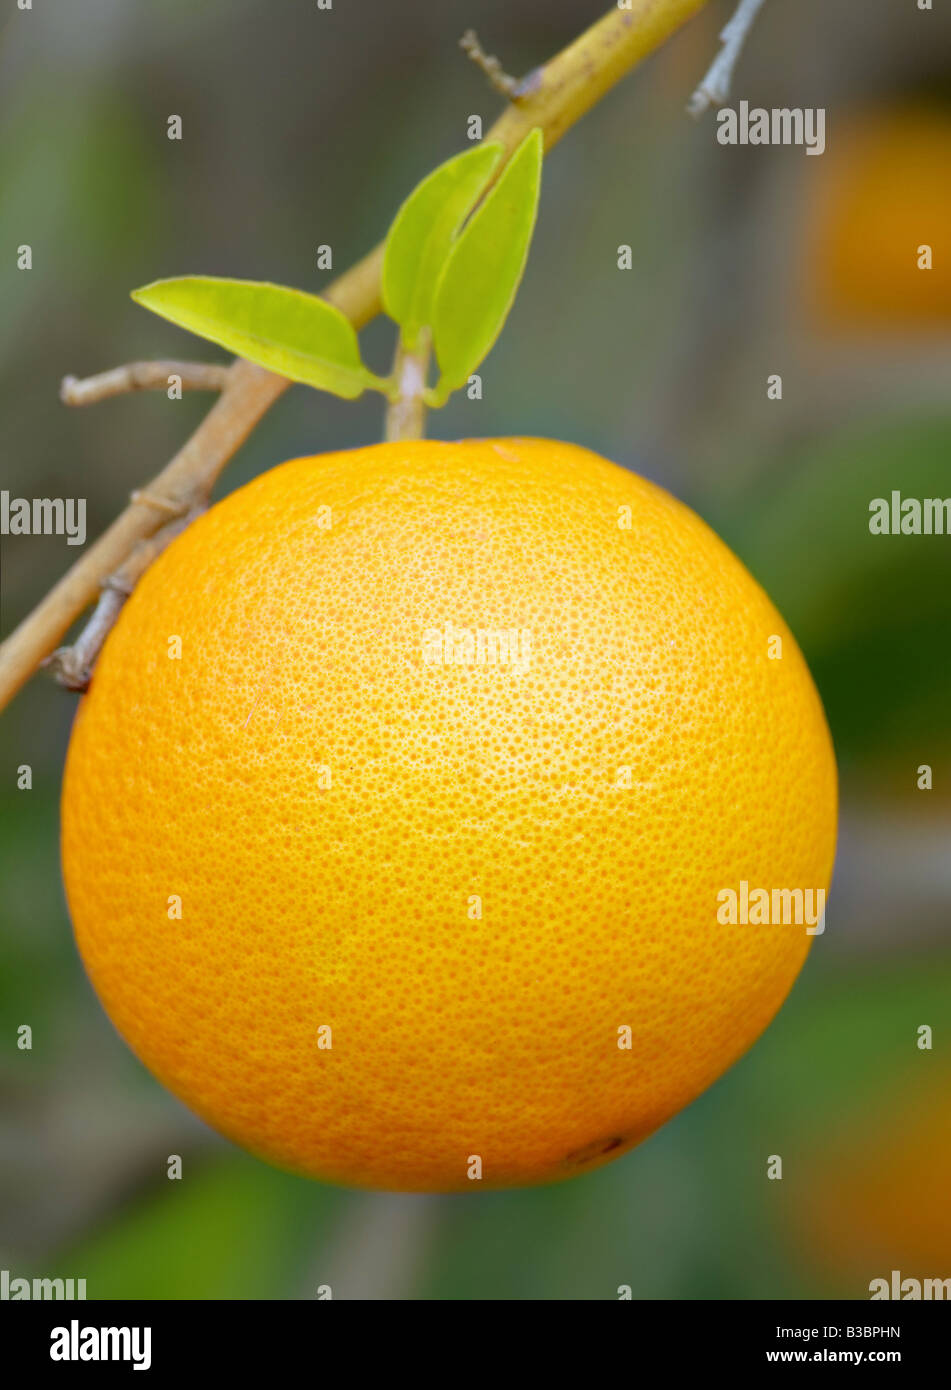 great image of juicy orange on a tree or bush - Stock Image